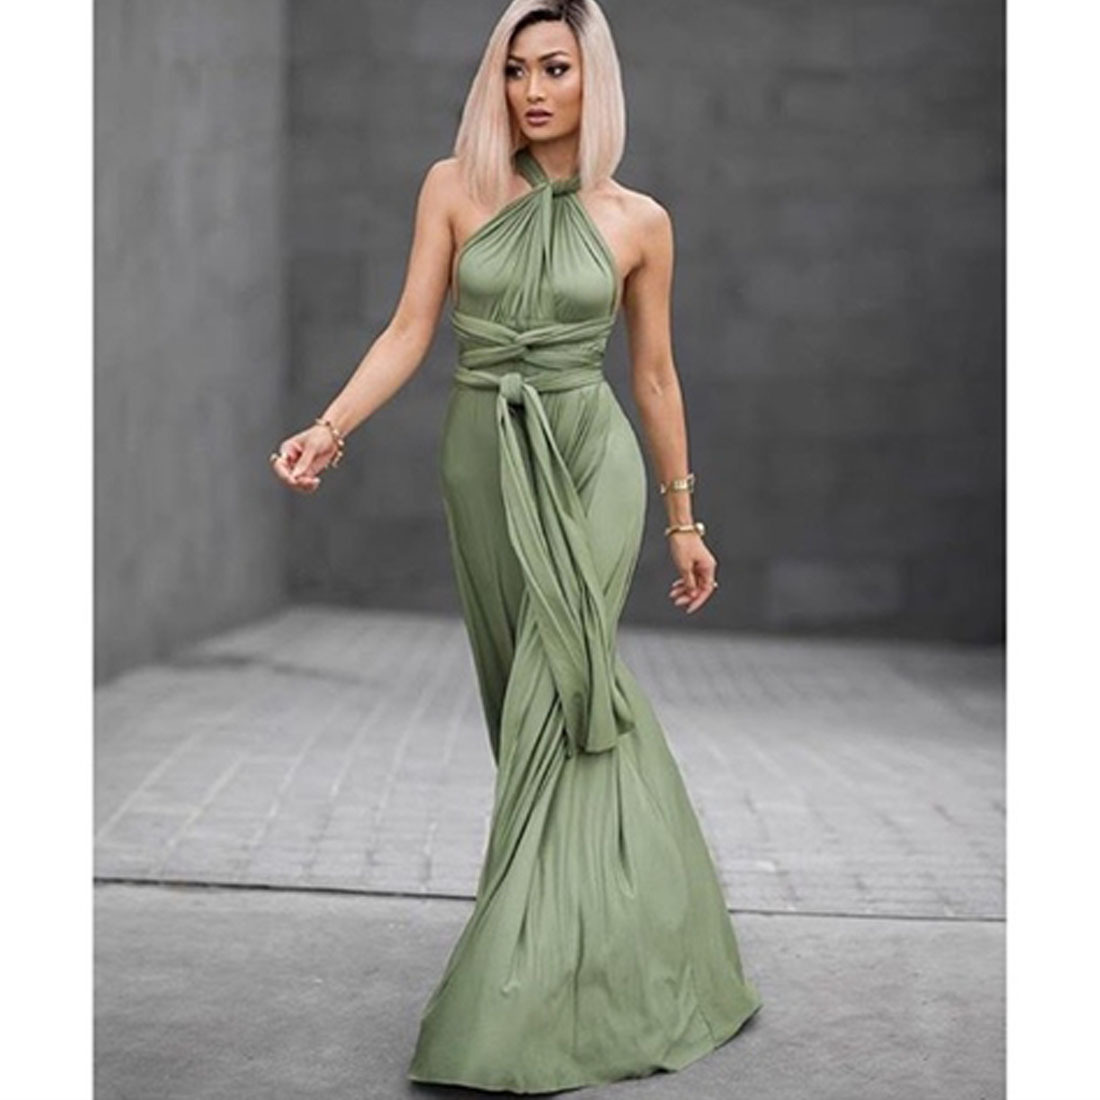 d6c56cd2af US $28.83 15% OFF|DIY Women Strapless bandage Variety bohemian oblique  cross sexy evening maxi dresses vestido de festa black infinity party  dress-in ...